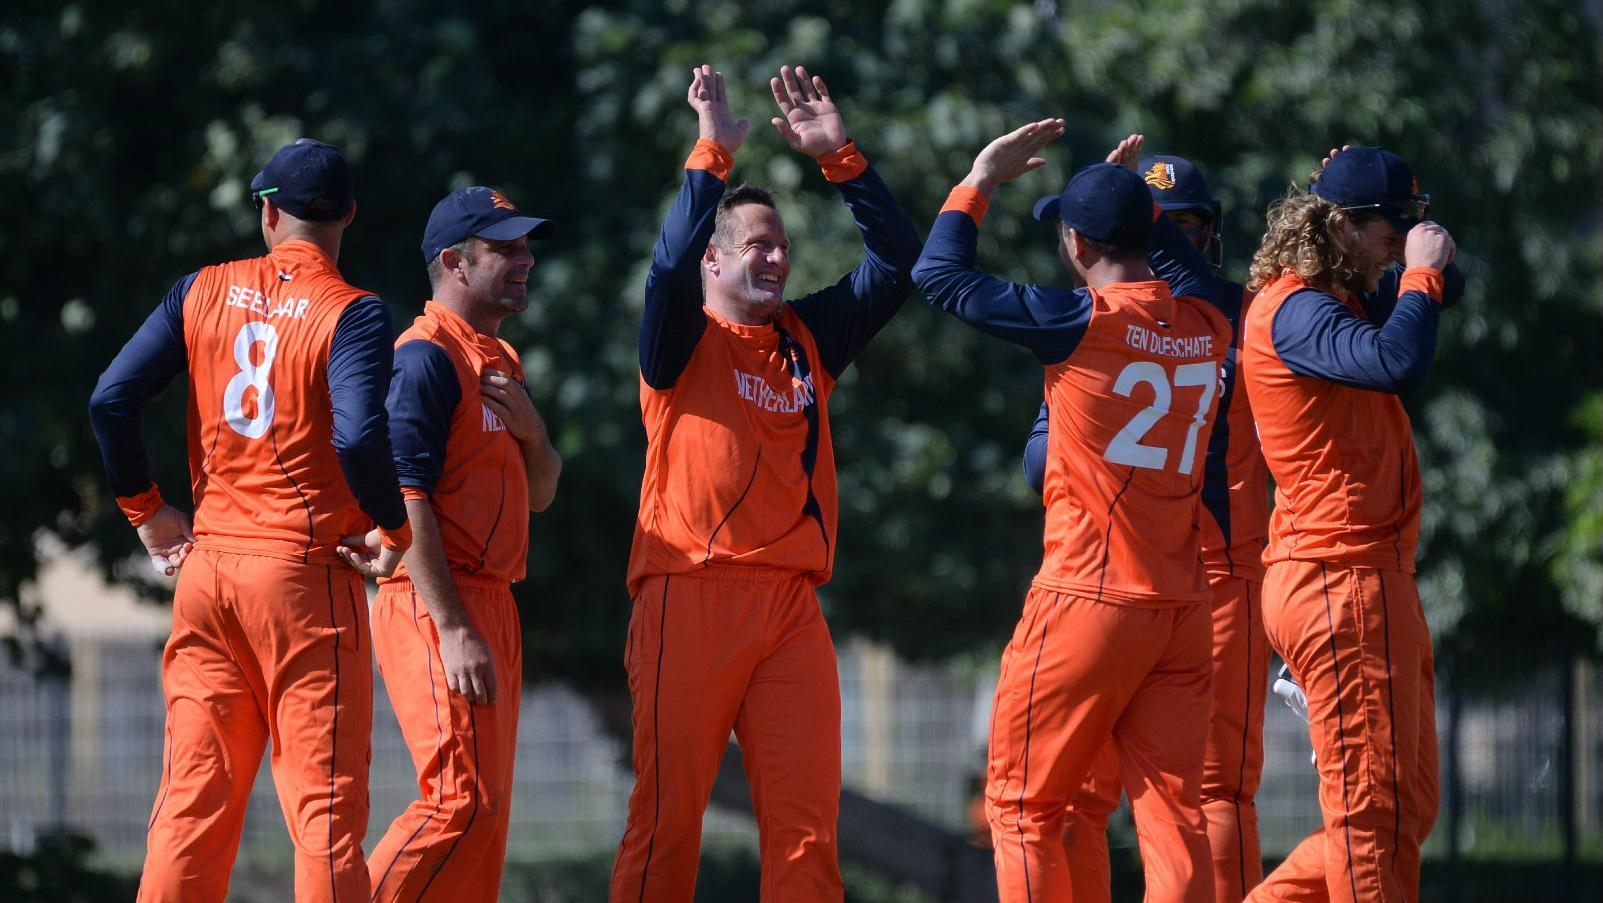 The Netherlands win the ICC World Cricket League Championship